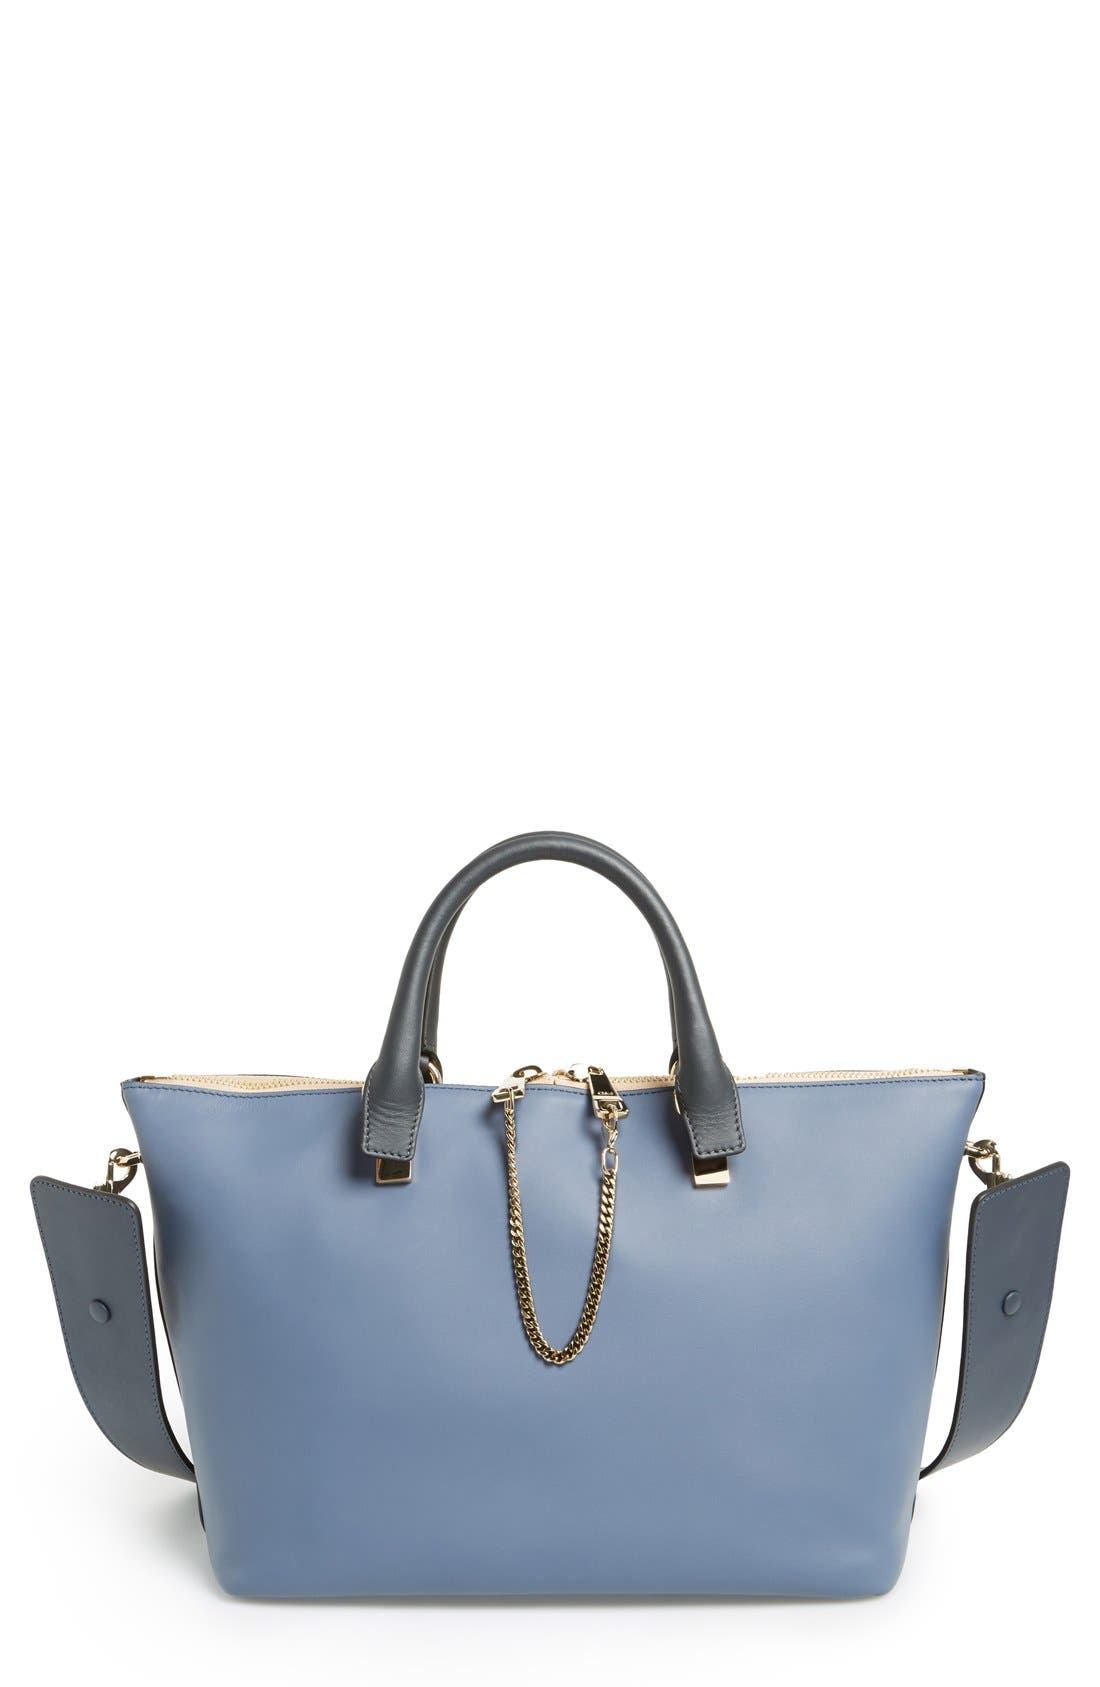 Main Image - Chloé 'Baylee - Medium' Shoulder Bag